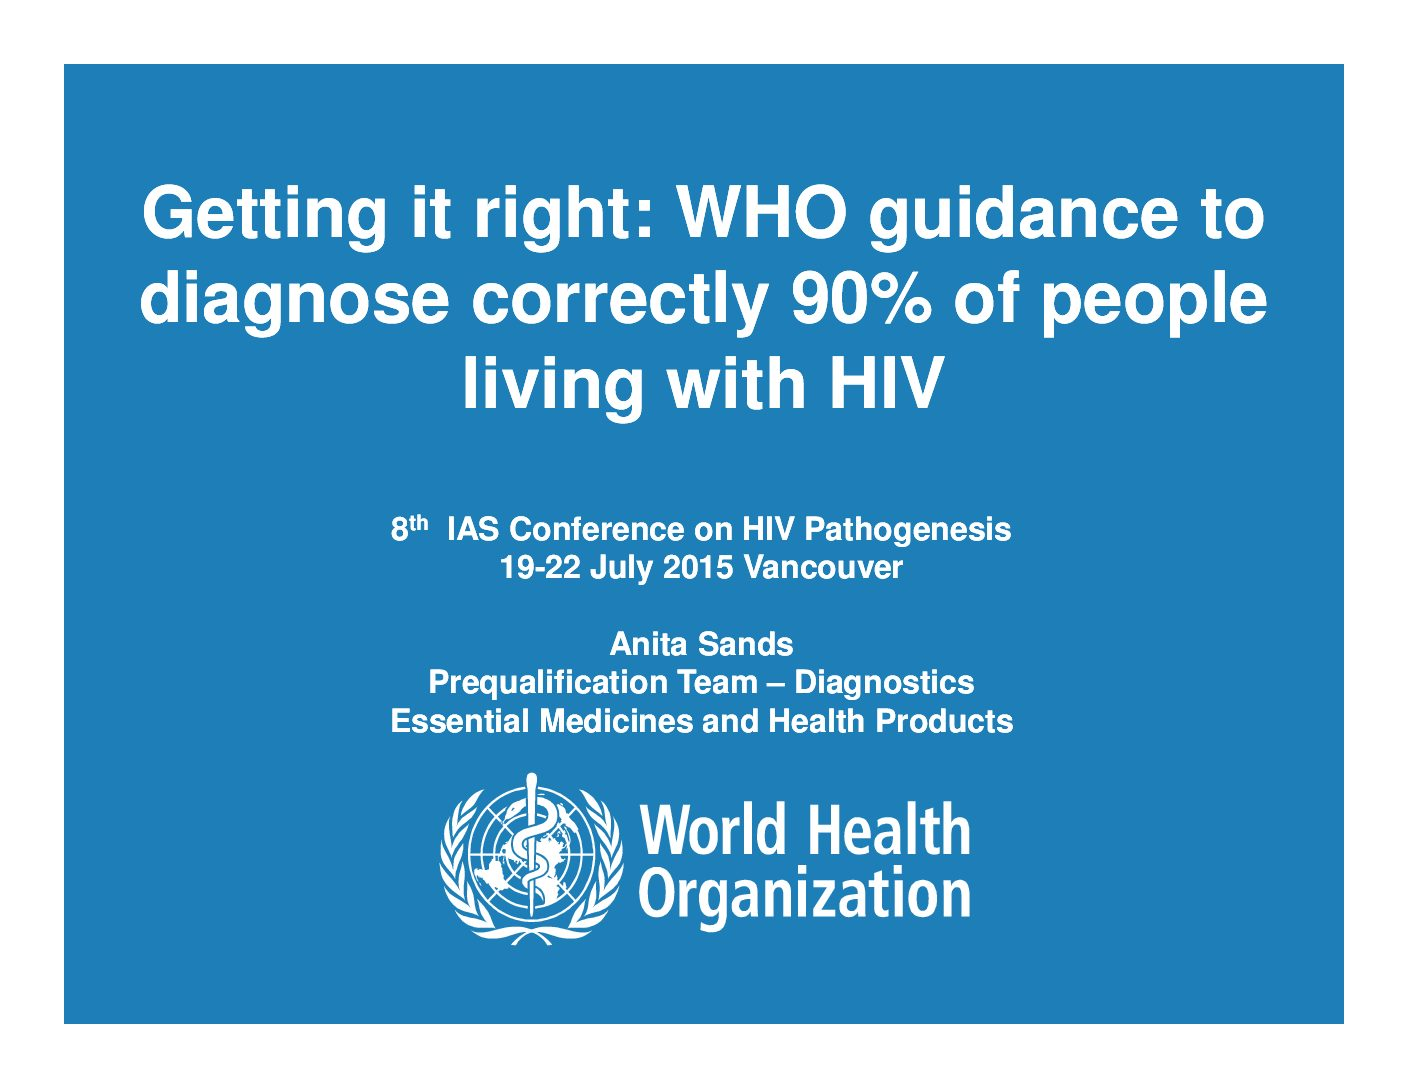 Getting it right WHO guidance to diagnose correctly 90% of people living with HIV.